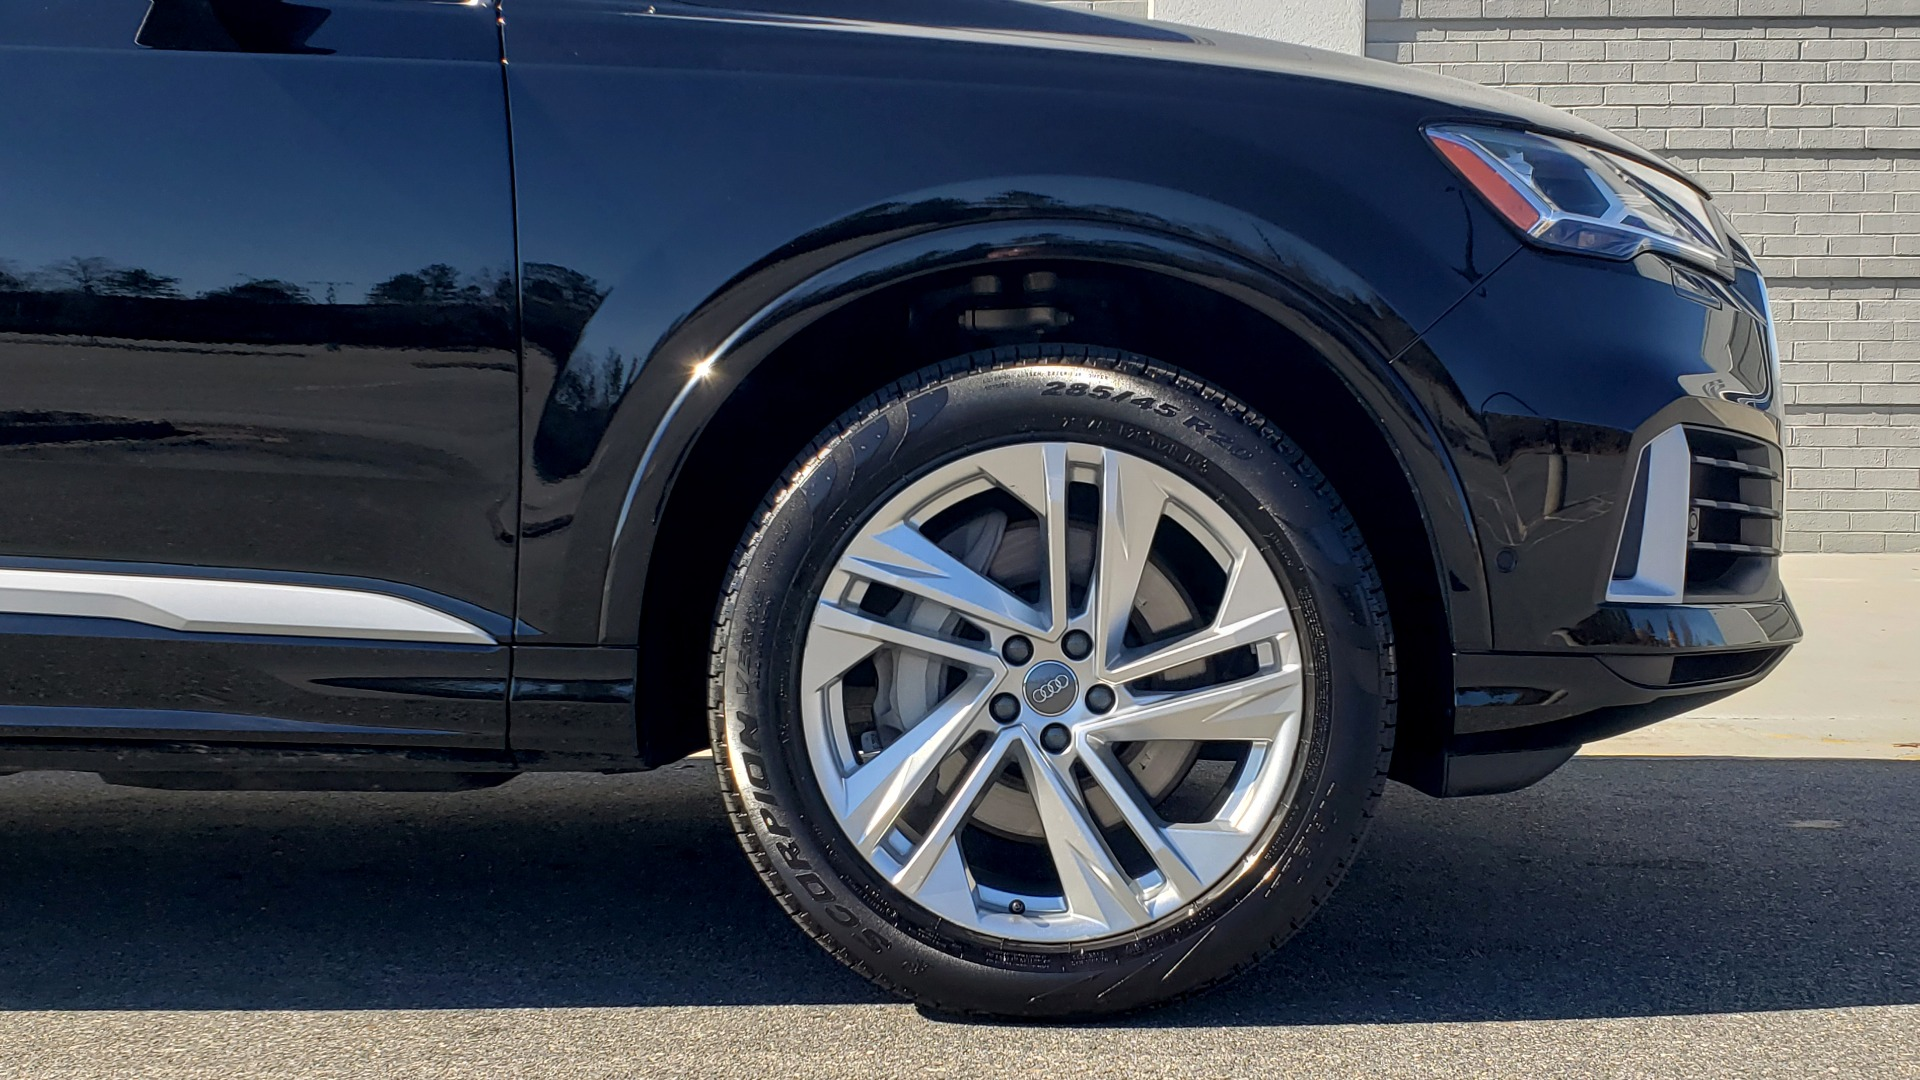 Used 2020 Audi Q7 PREMIUM PLUS / NAV / SUNROOF / 3-ROW / REARVIEW for sale Sold at Formula Imports in Charlotte NC 28227 89